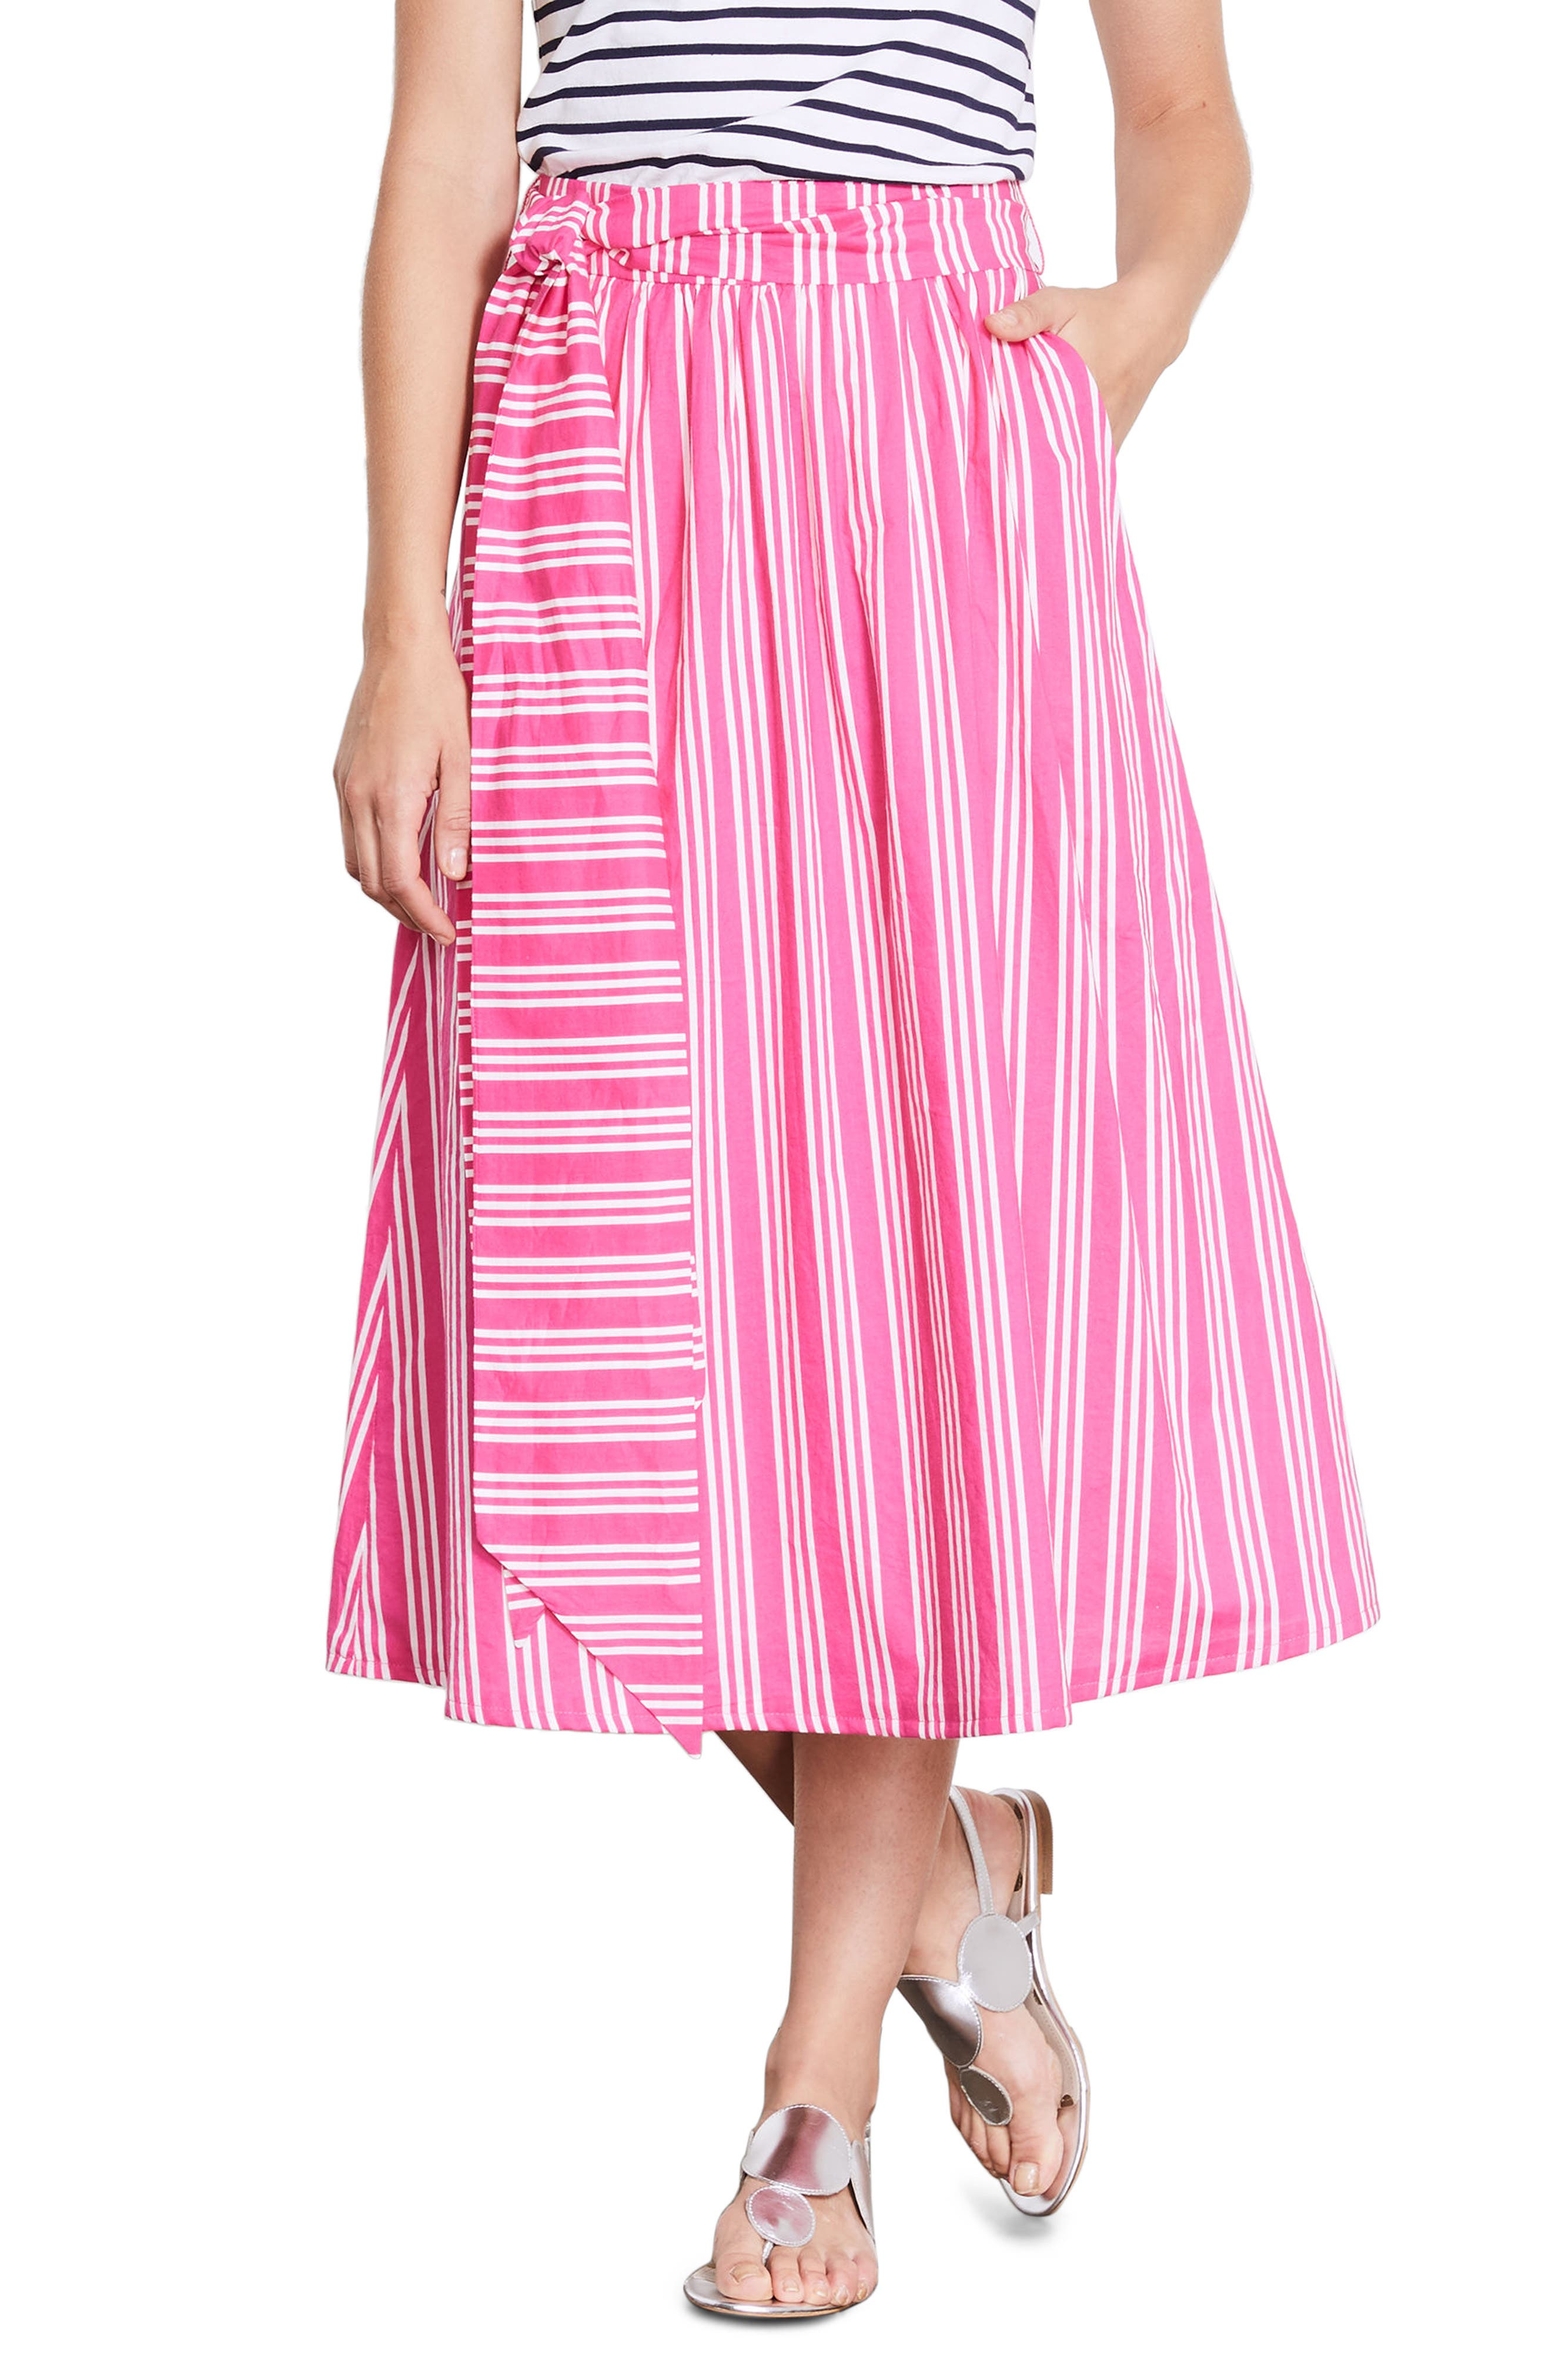 Kiera Midi Skirt,                         Main,                         color, Party Pink And Ecru